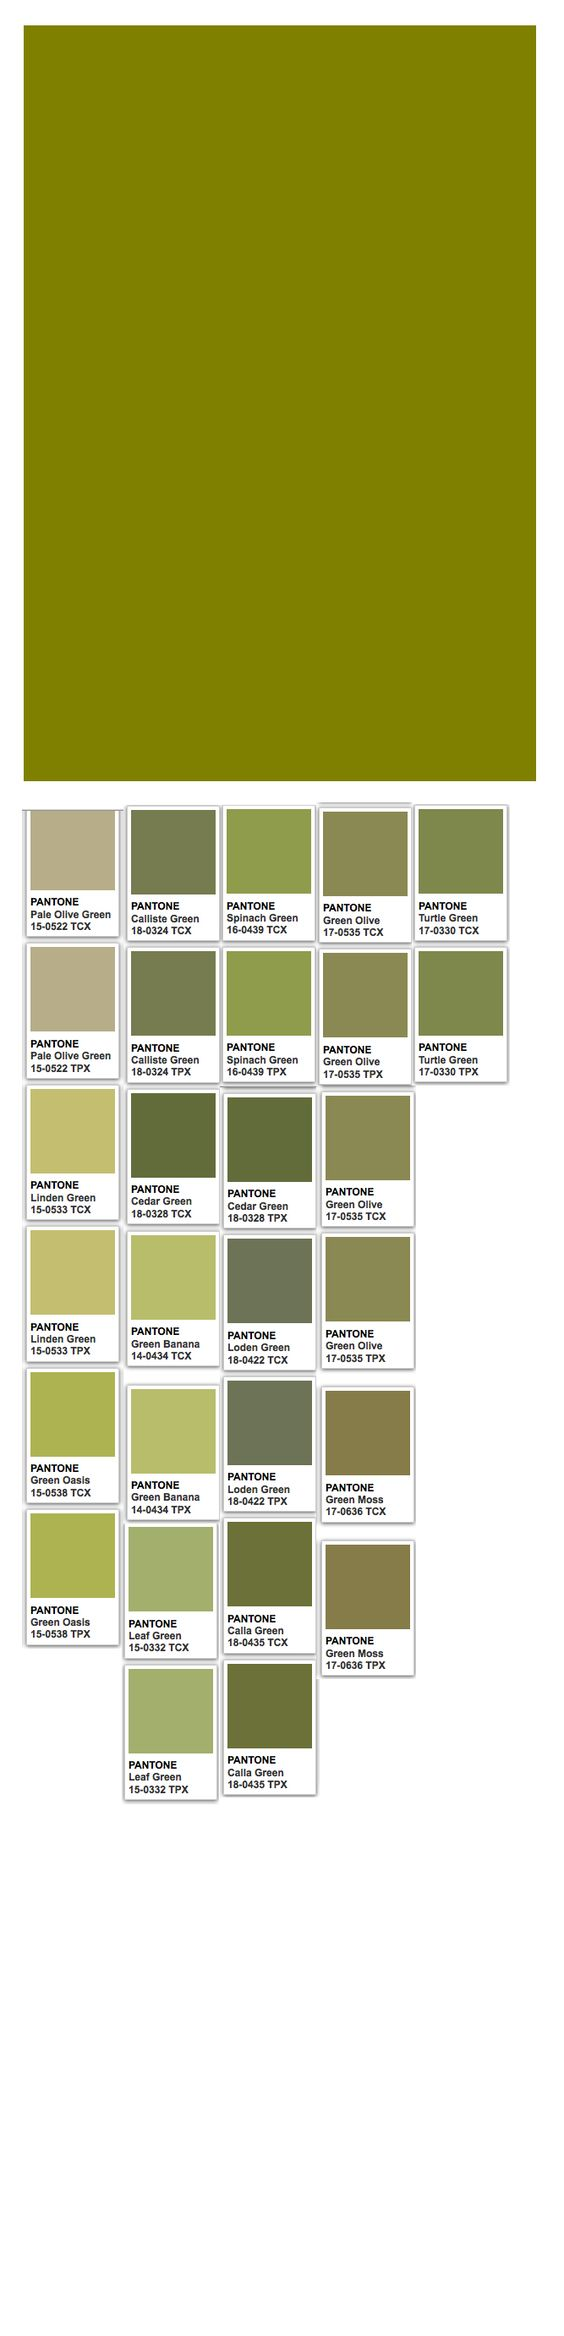 Olive Web And Pantone Colors Green Moss Olive Khaki Dried Tobacco Amp Avocado Pinterest